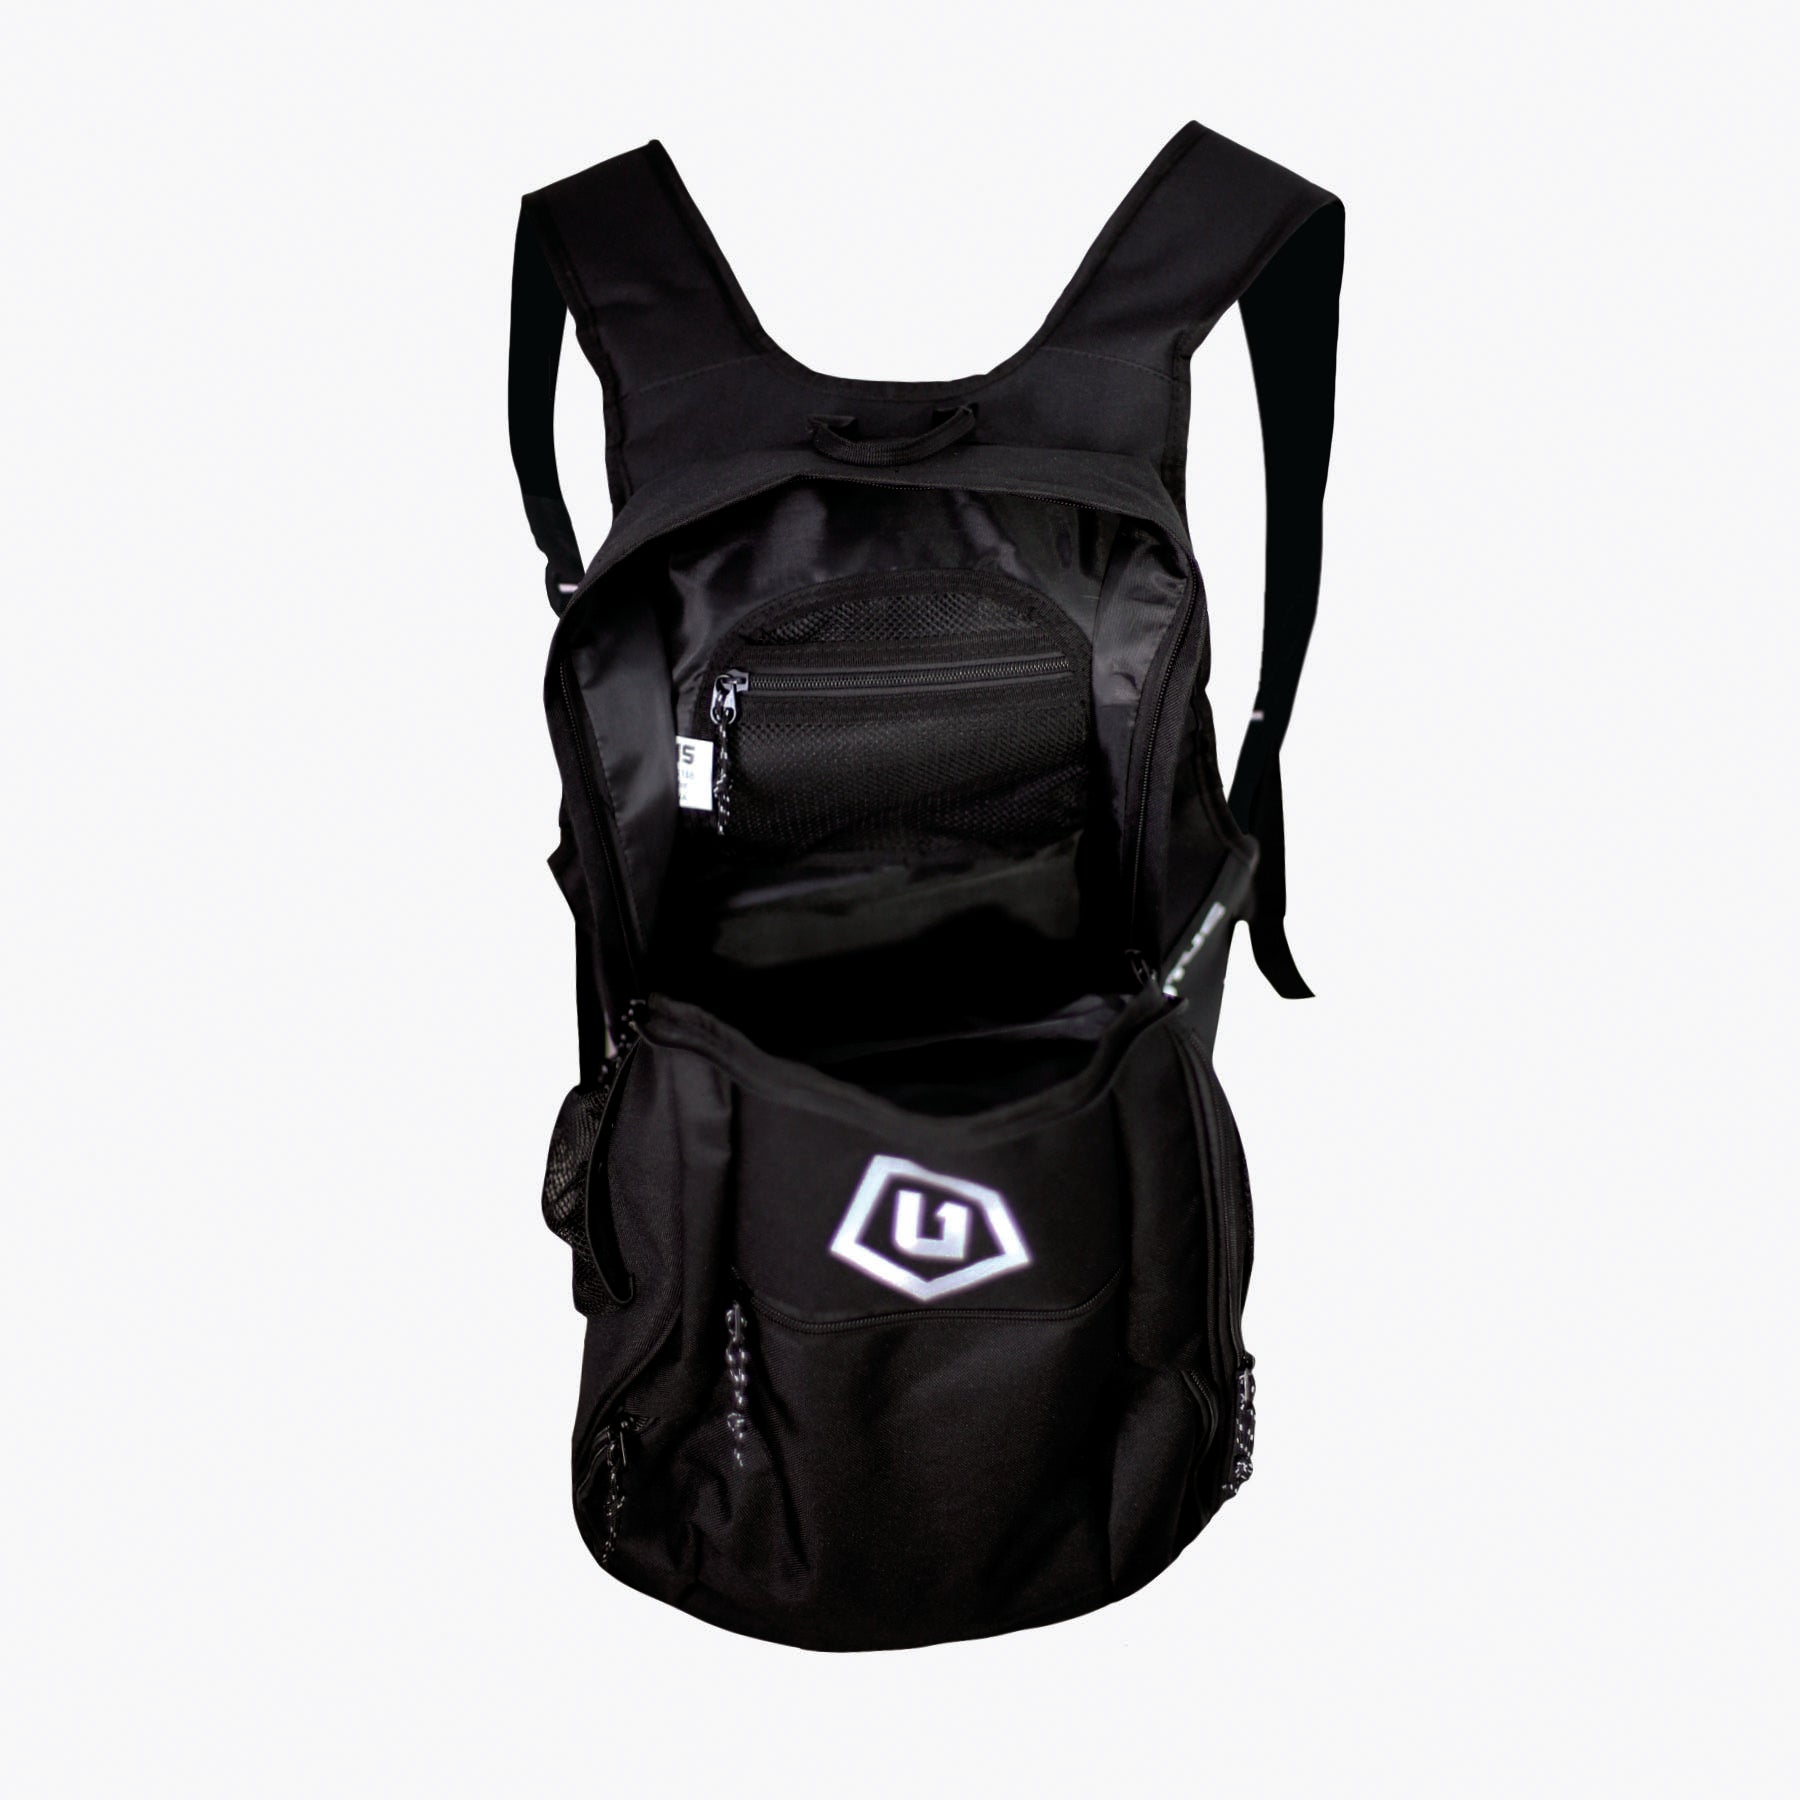 UN1TUS Team Backpack 3.0